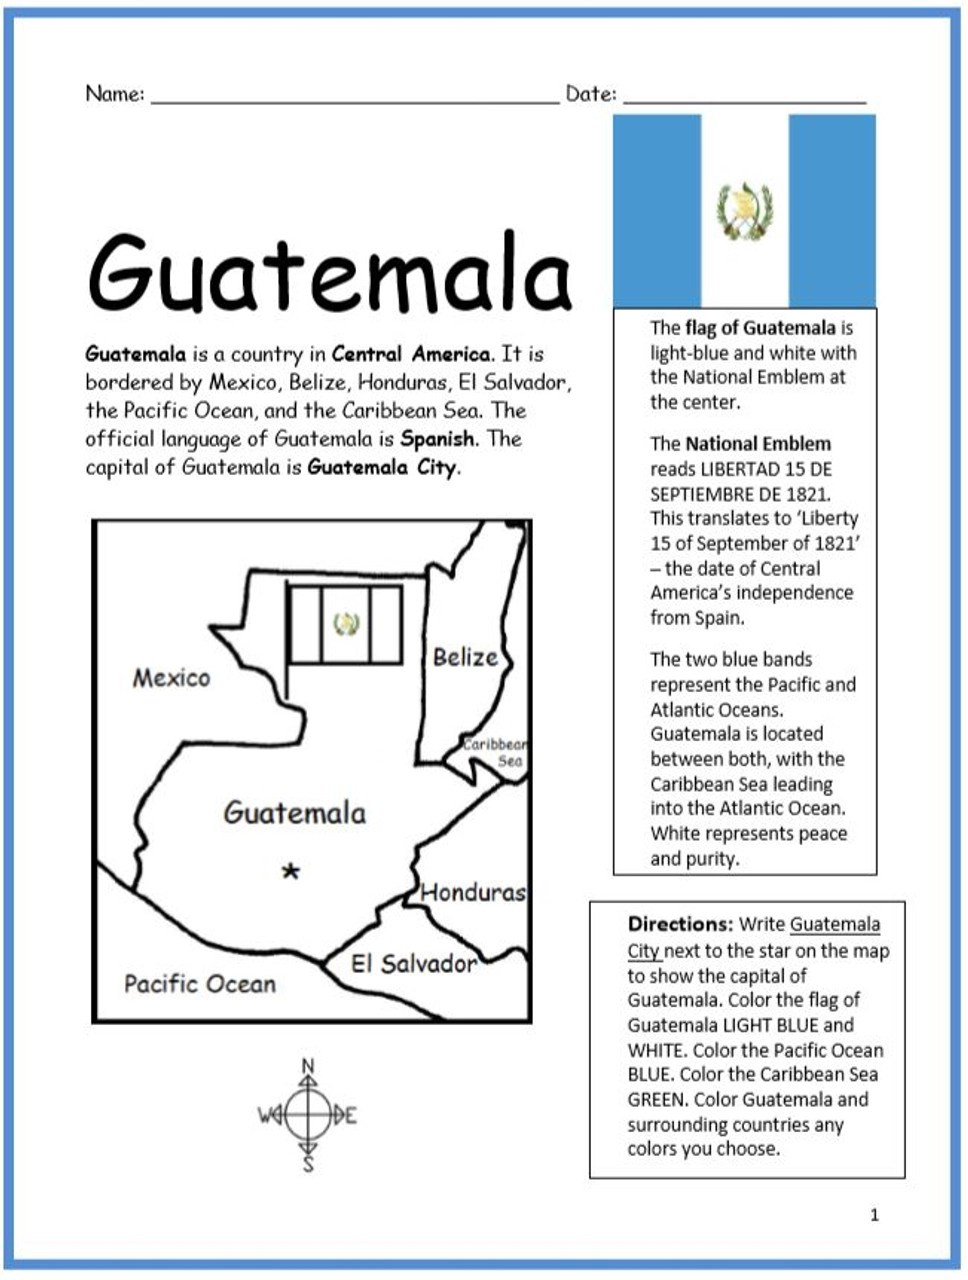 Color and Learn Geography - Guatemala - Amped Up Learning [ 1280 x 968 Pixel ]